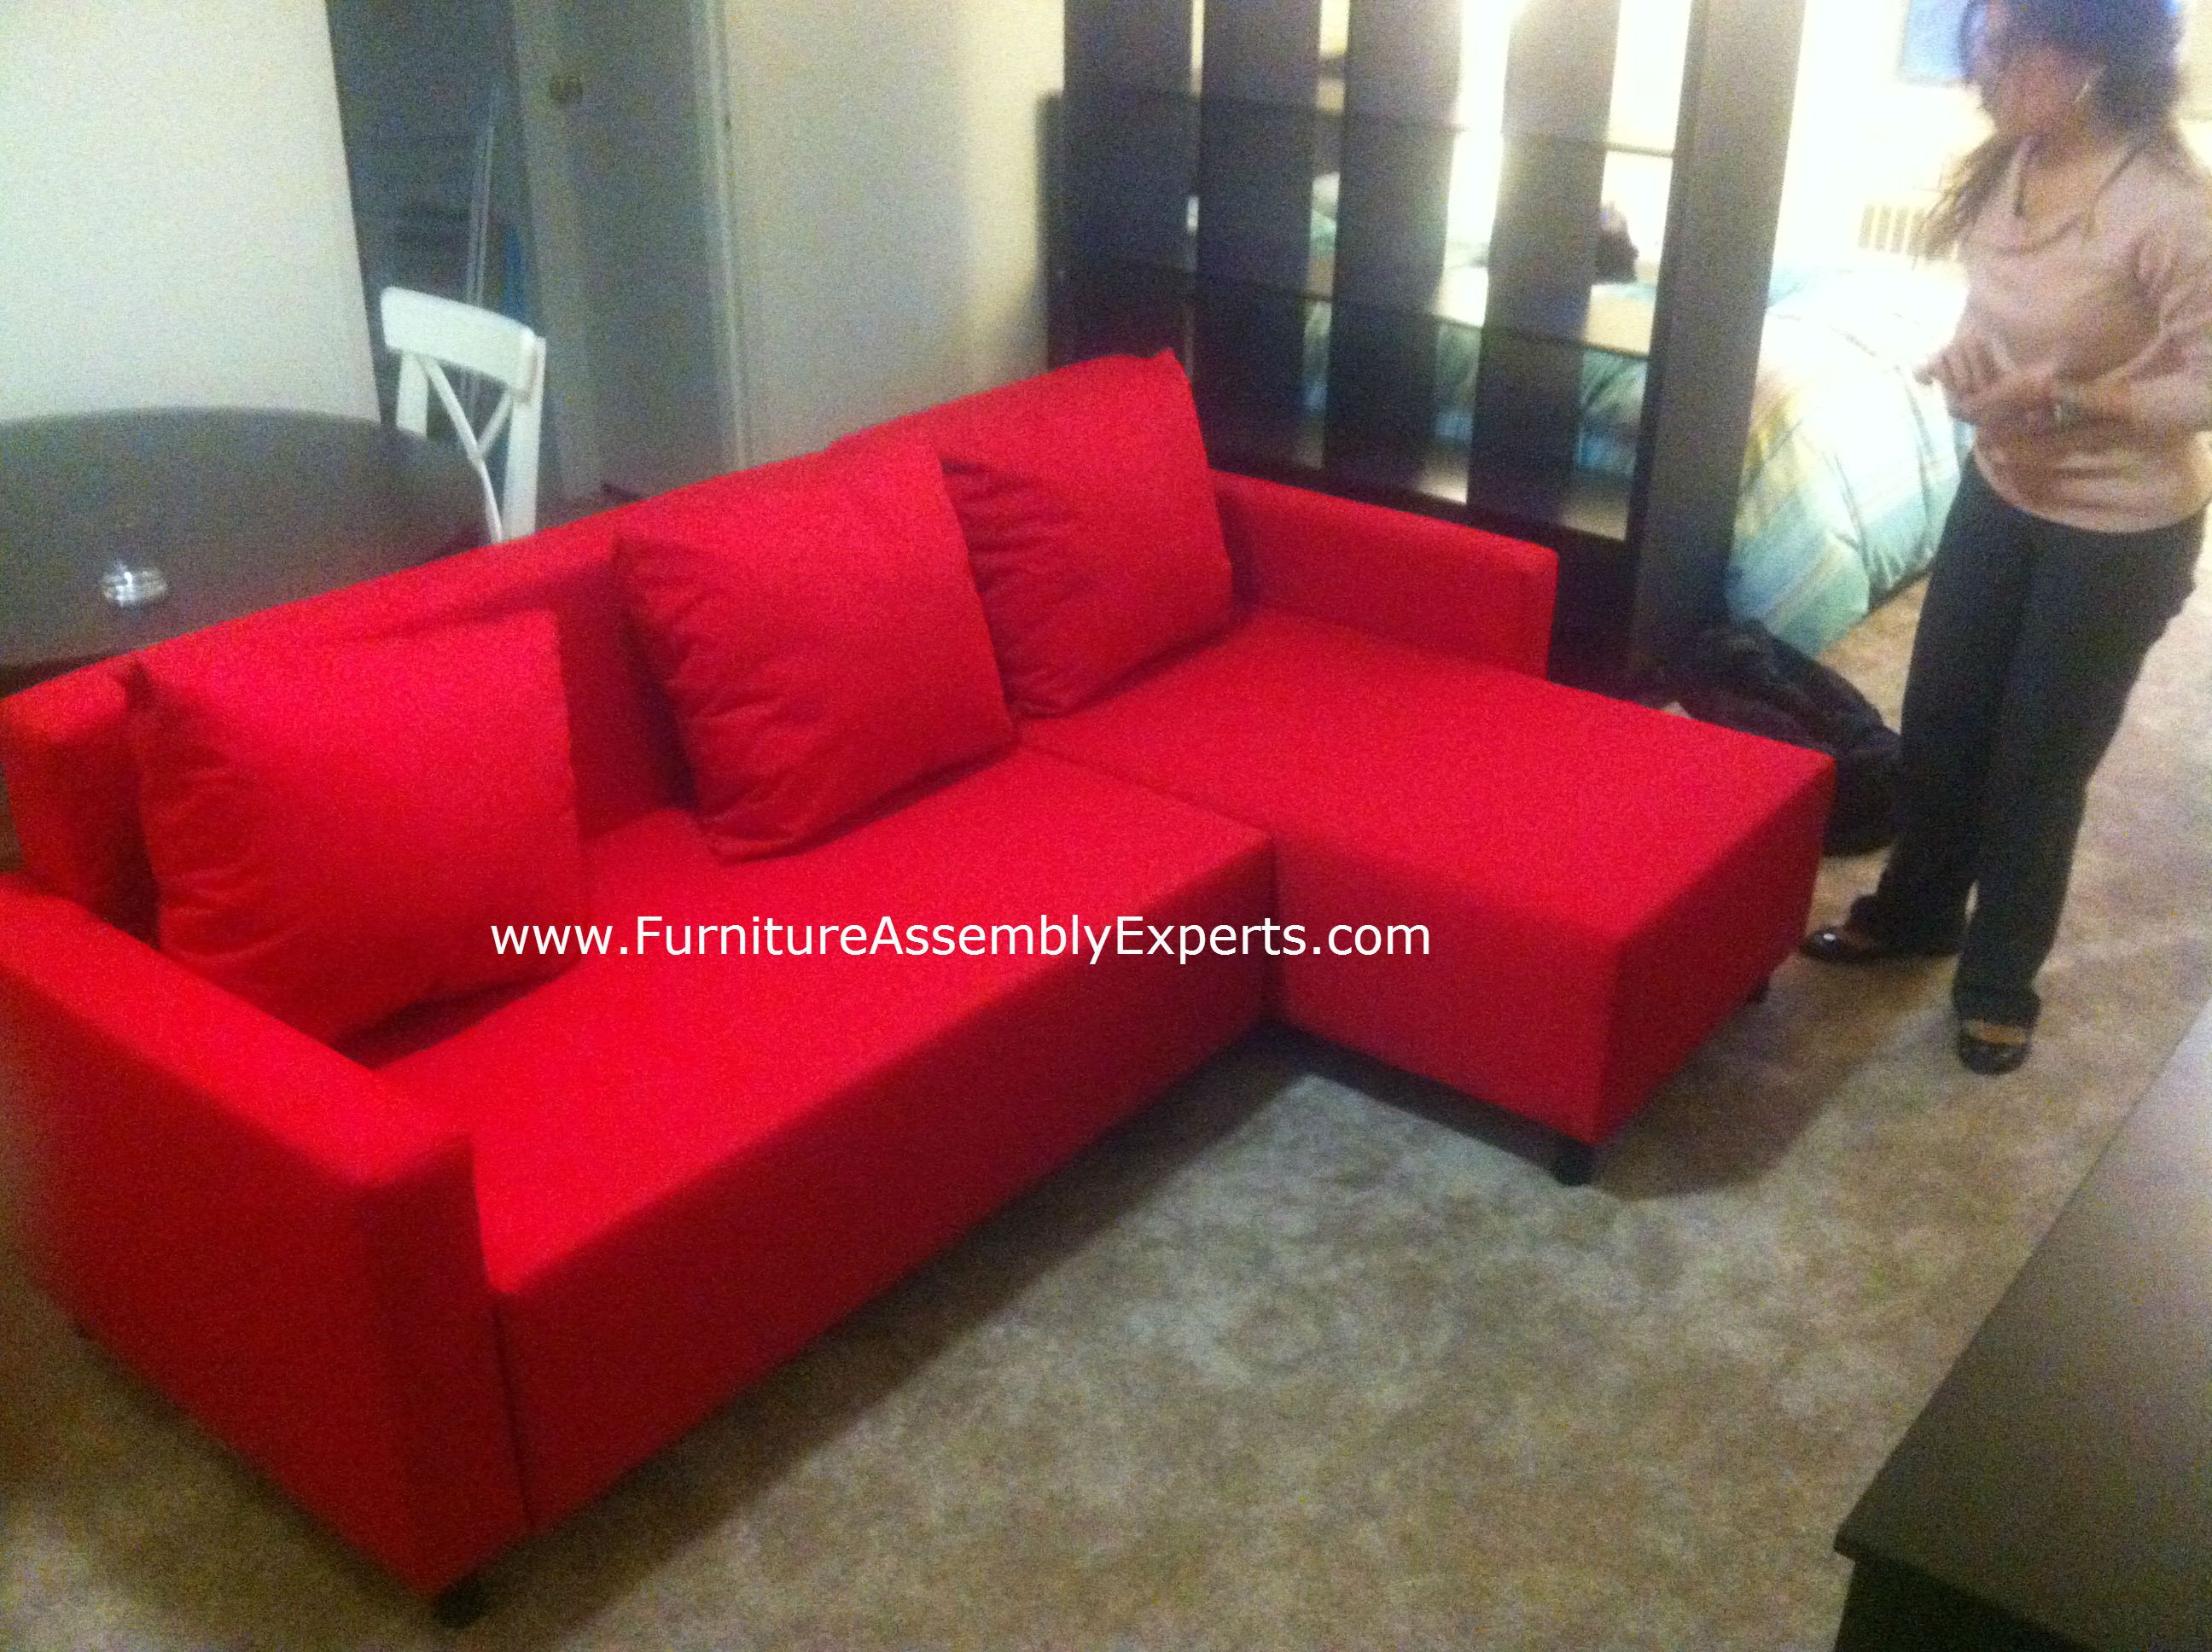 Ikea Sectional Sofa Bed Red Assembled At State House Apartments In  Washington DC By Furniture Assembly